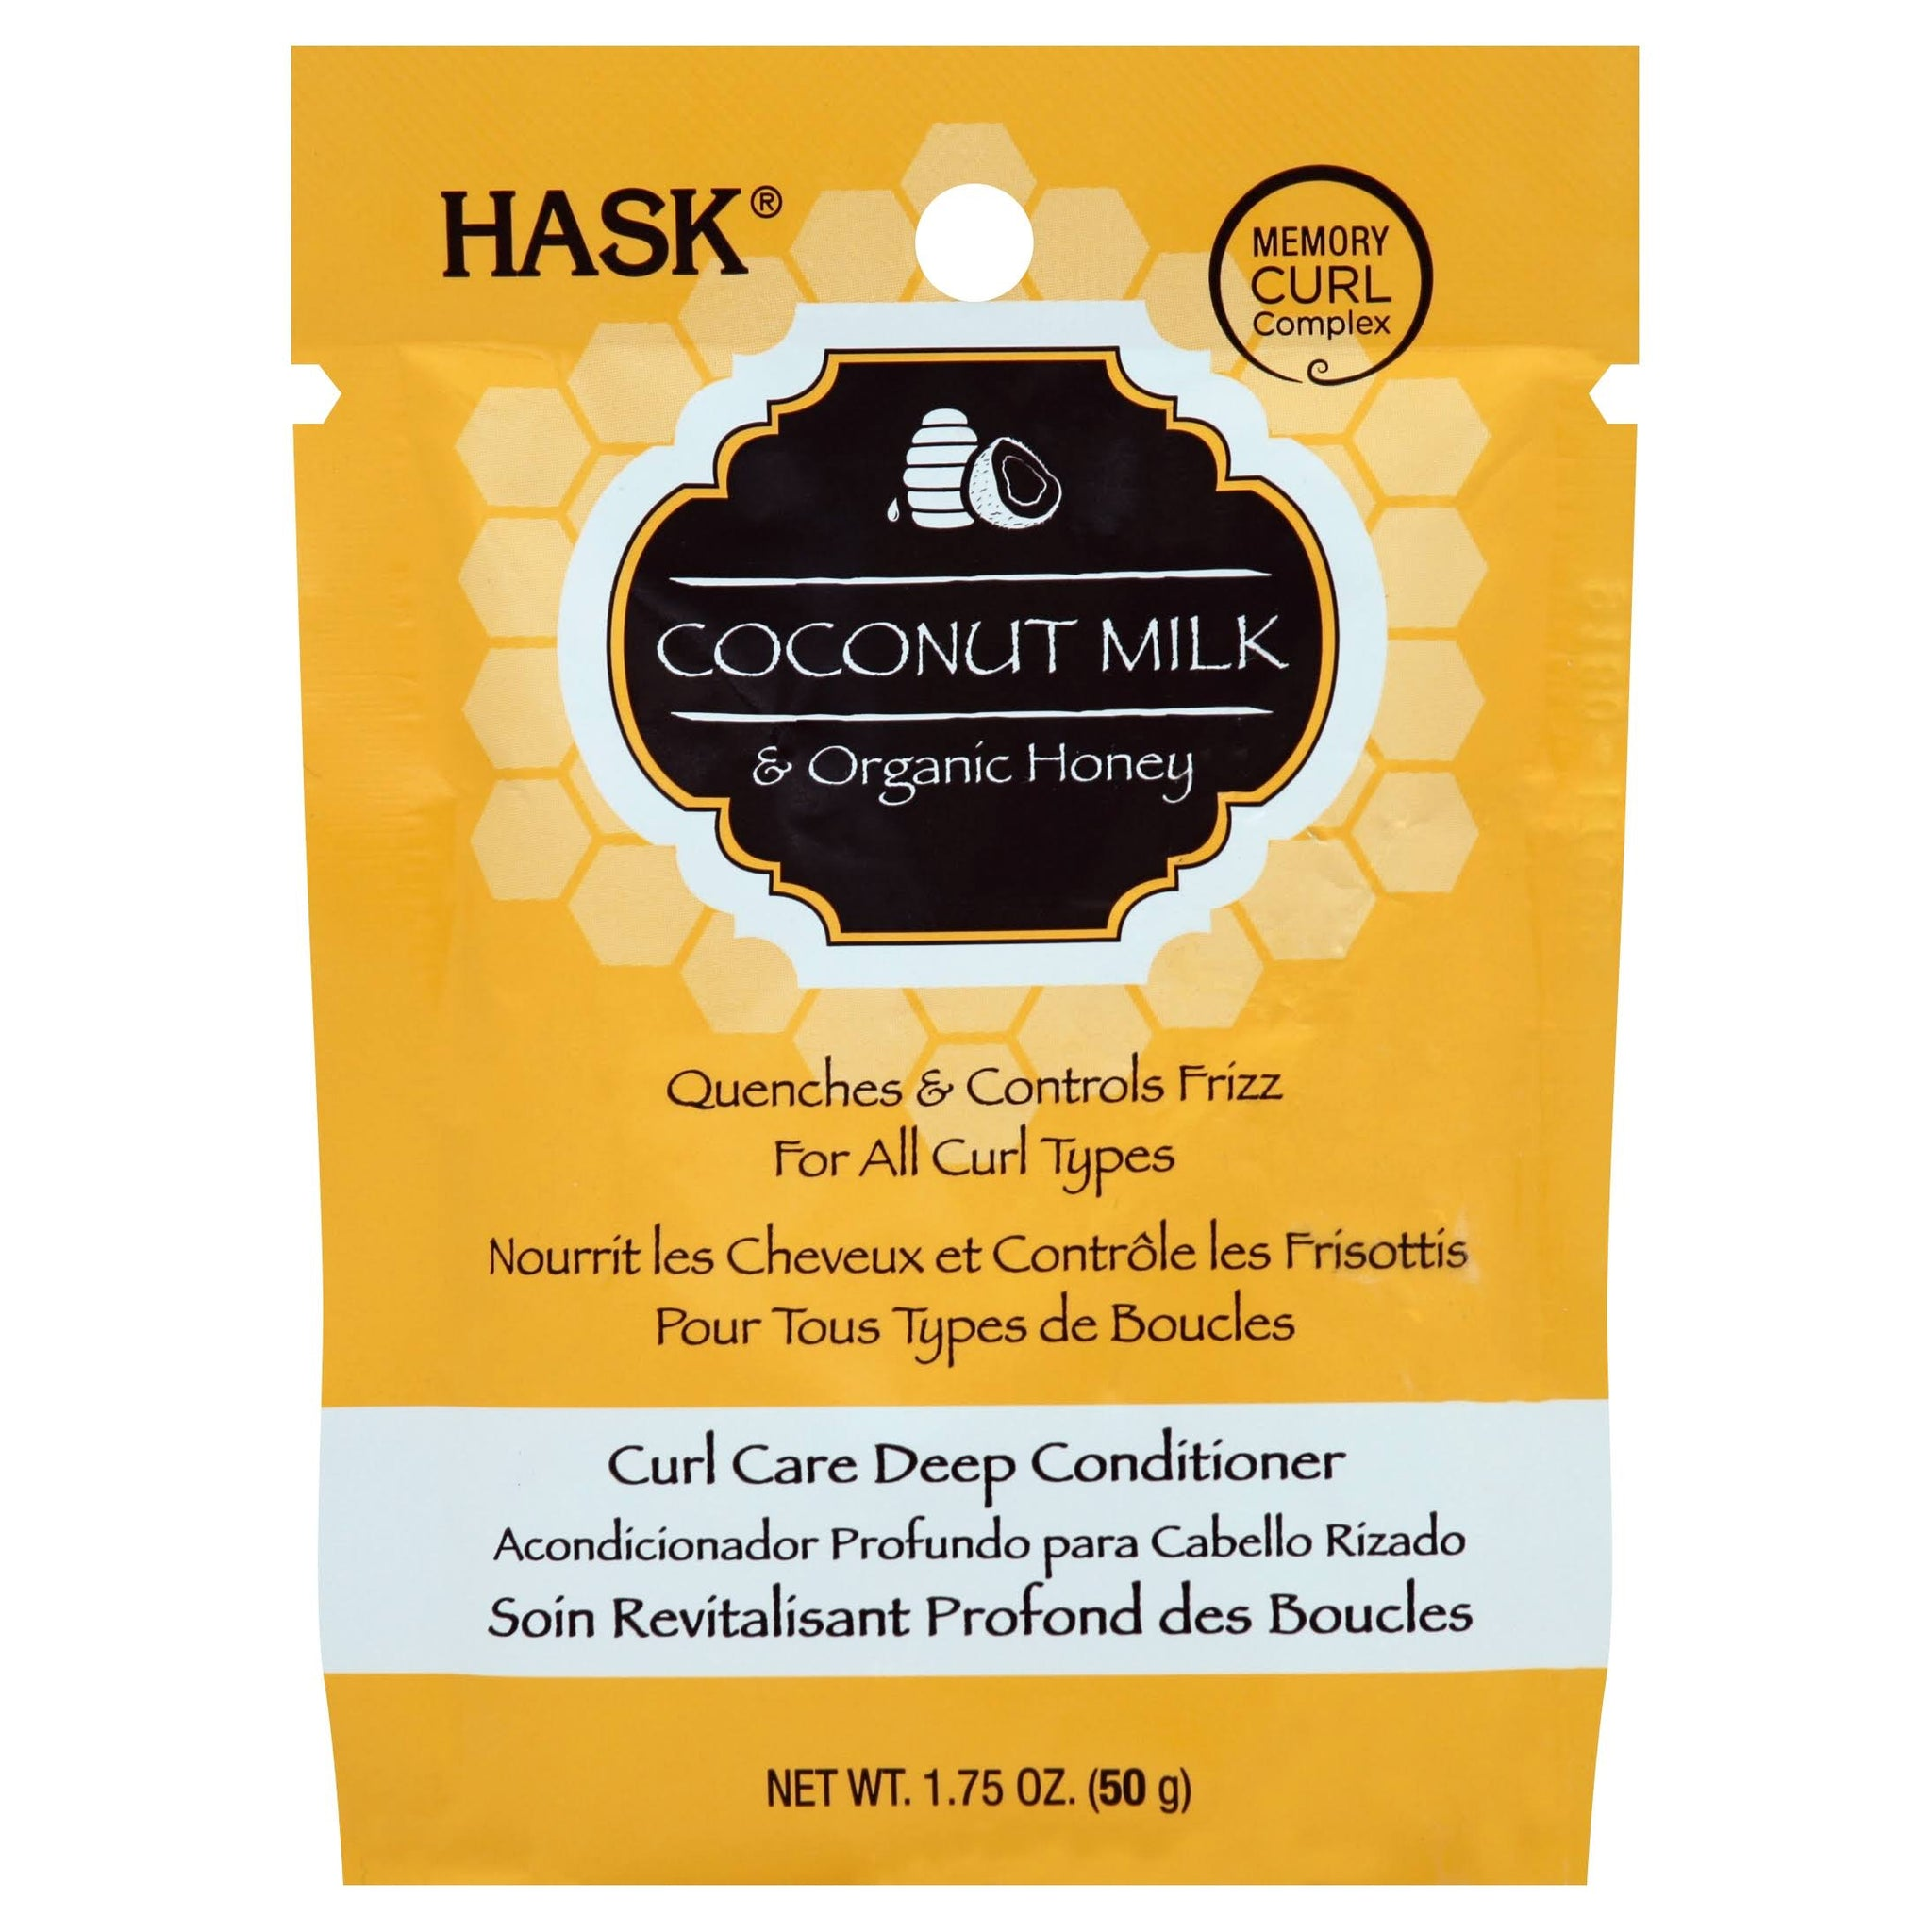 Hask Deep Conditioner, Curl Care, Coconut Milk & Organic Honey